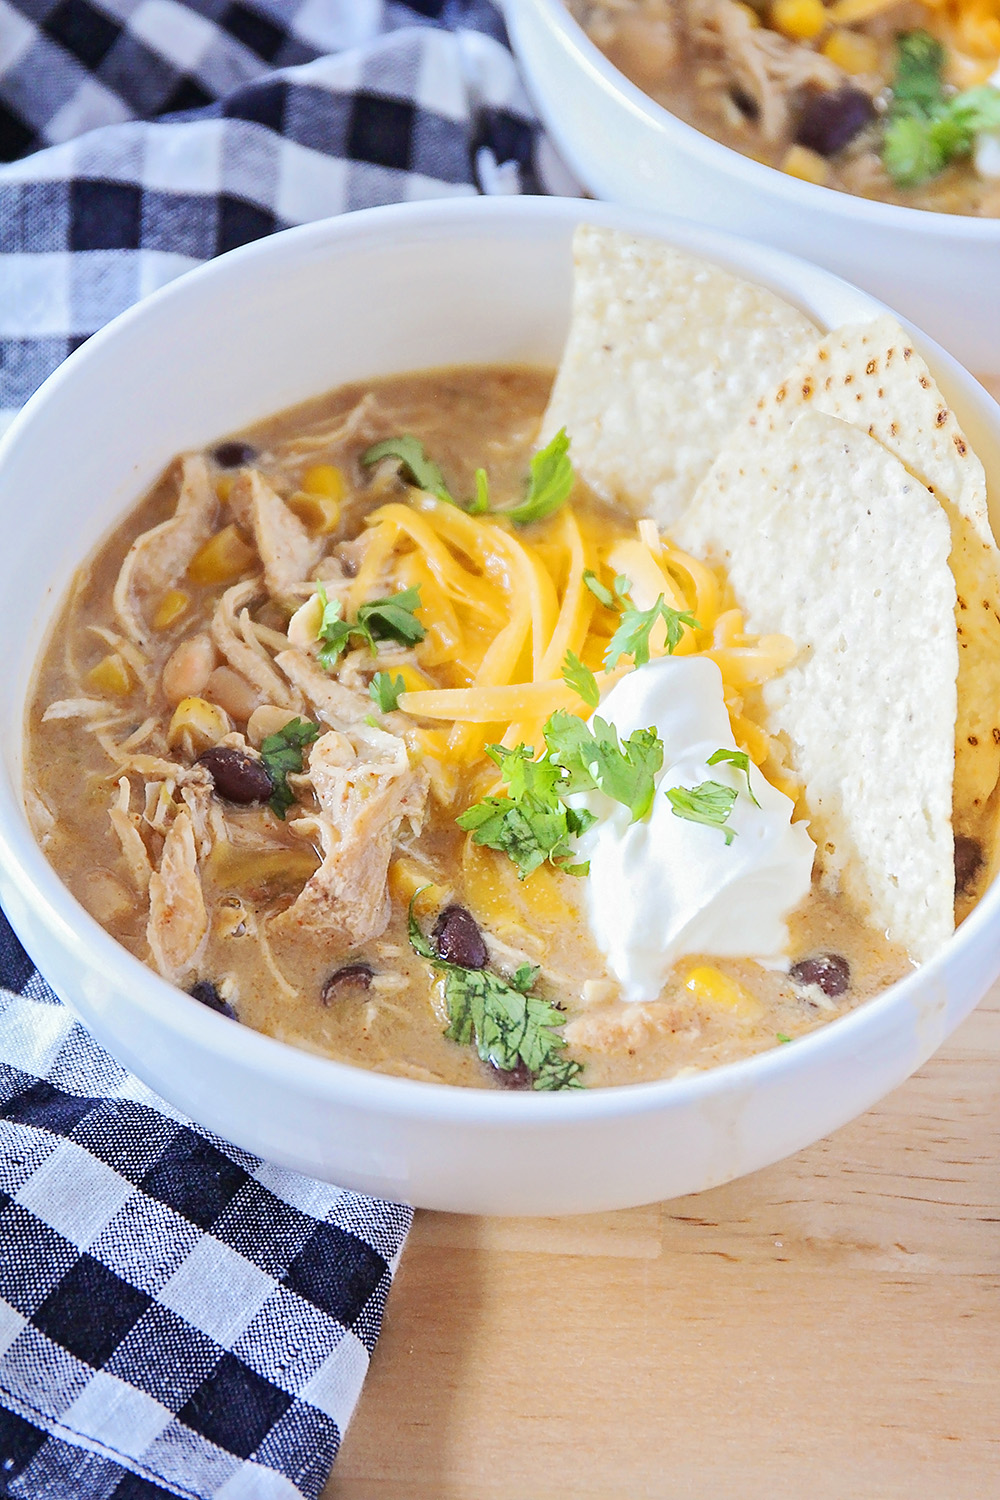 This instant pot white chicken chili is simple to make, and so hearty and delicious!